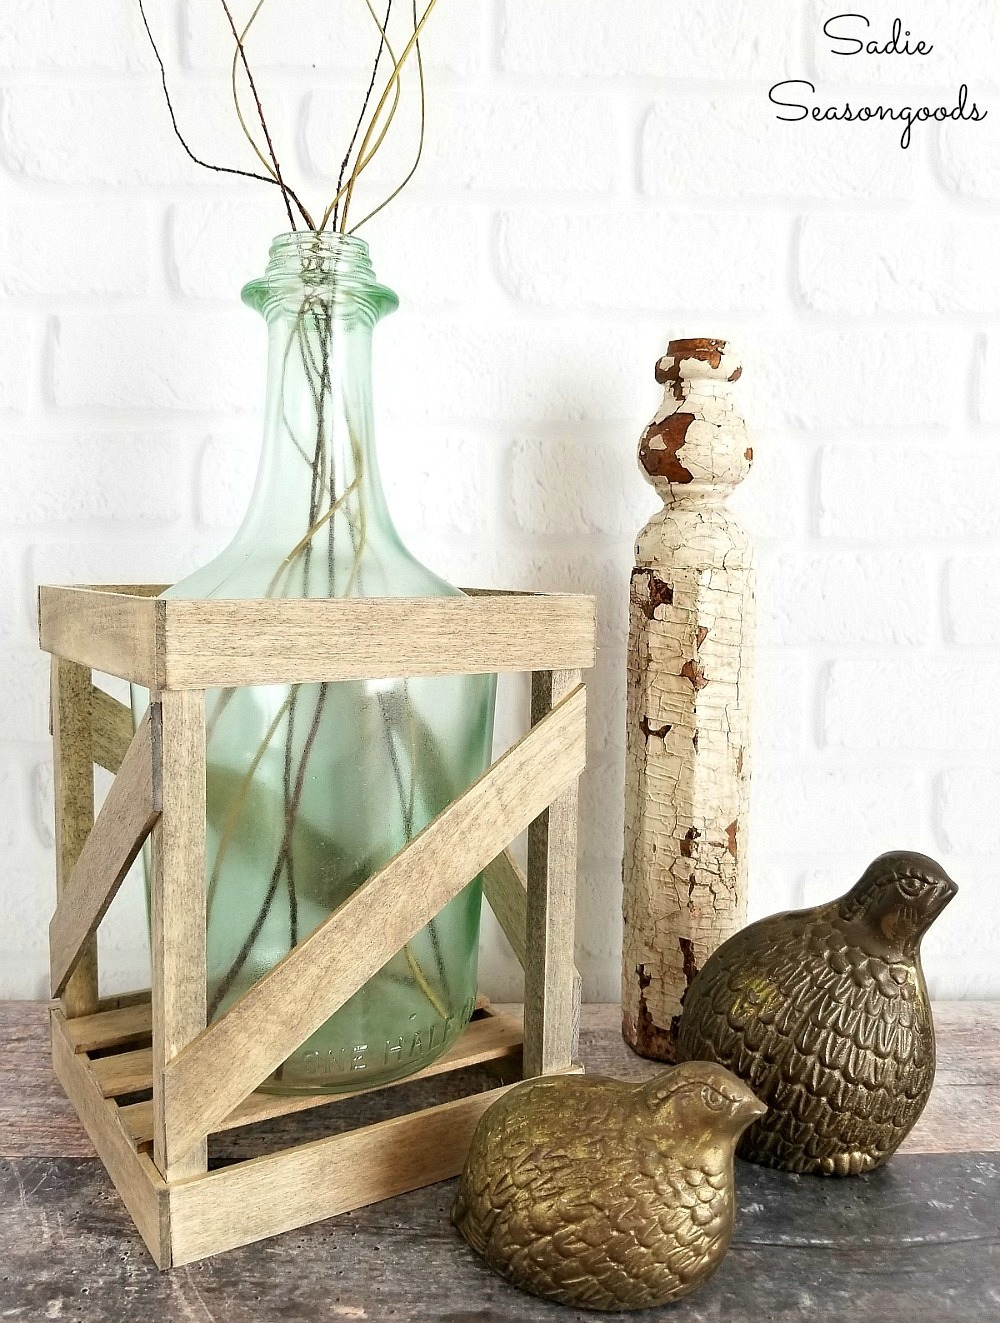 DIY demijohn wine bottle vase by Sadie Seasongoods, featured on Funky Junk Interiors